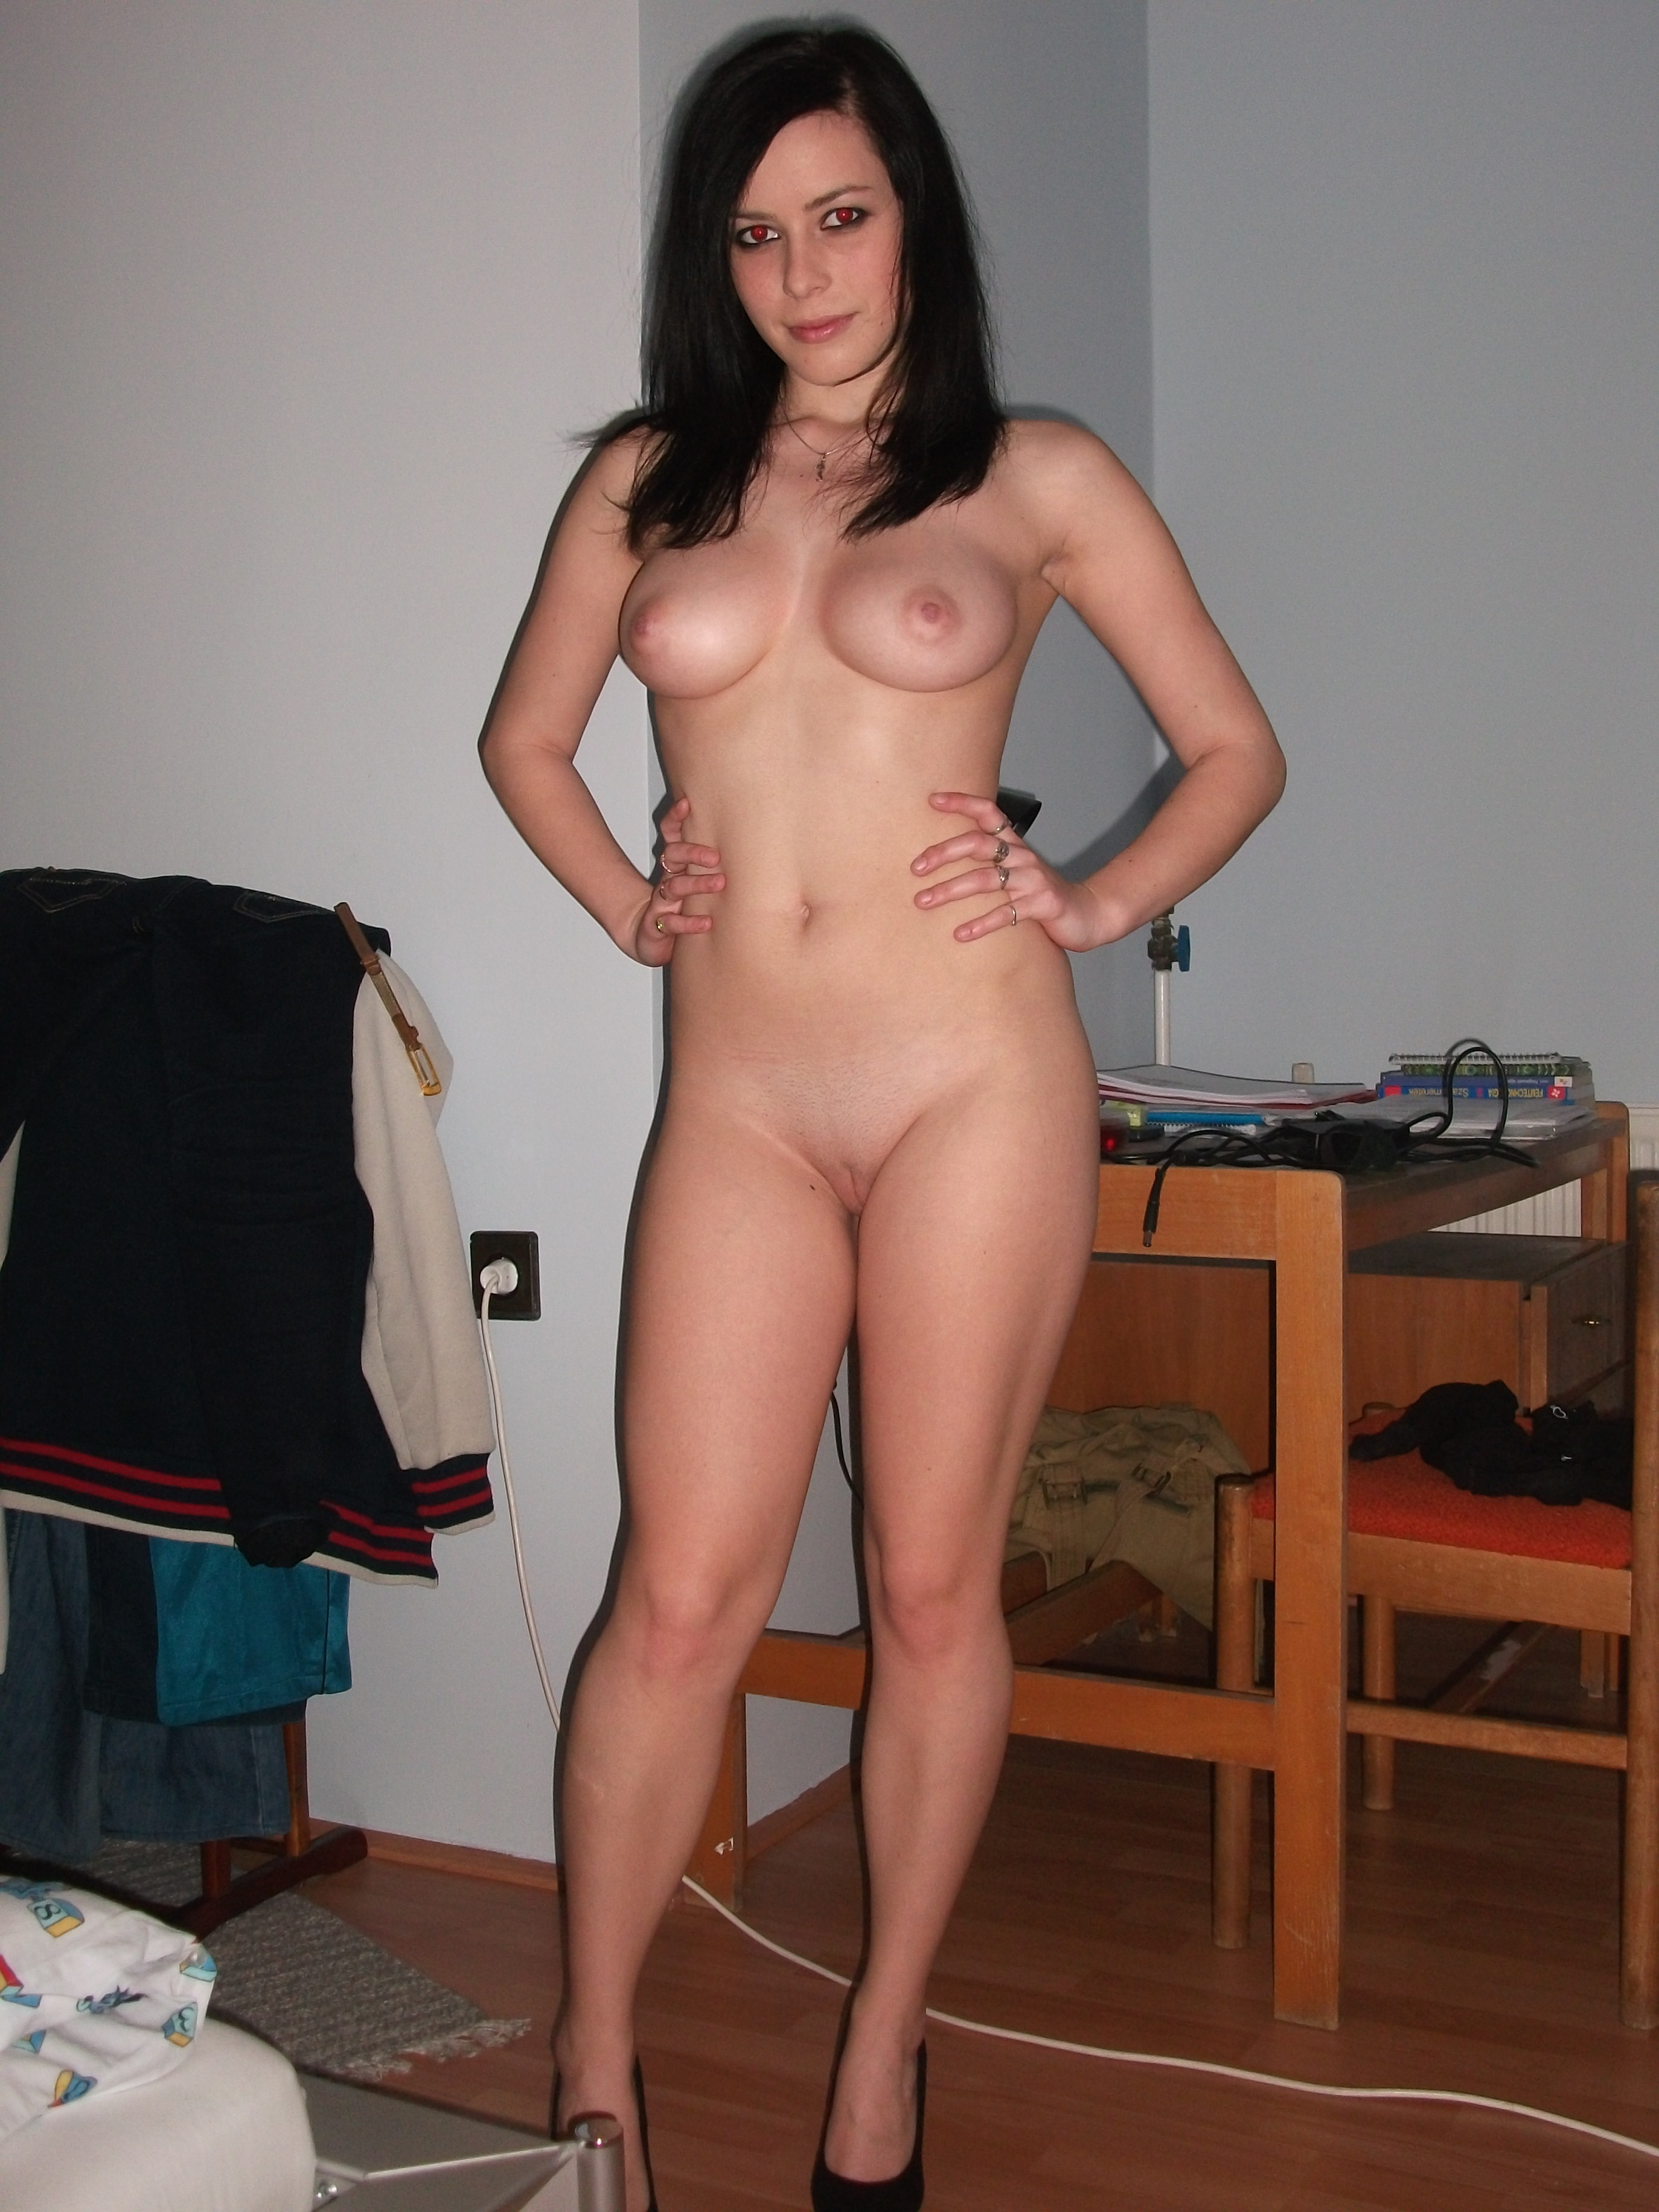 Porn Motherrless naked amateur motherless | free hot nude porn pic gallery